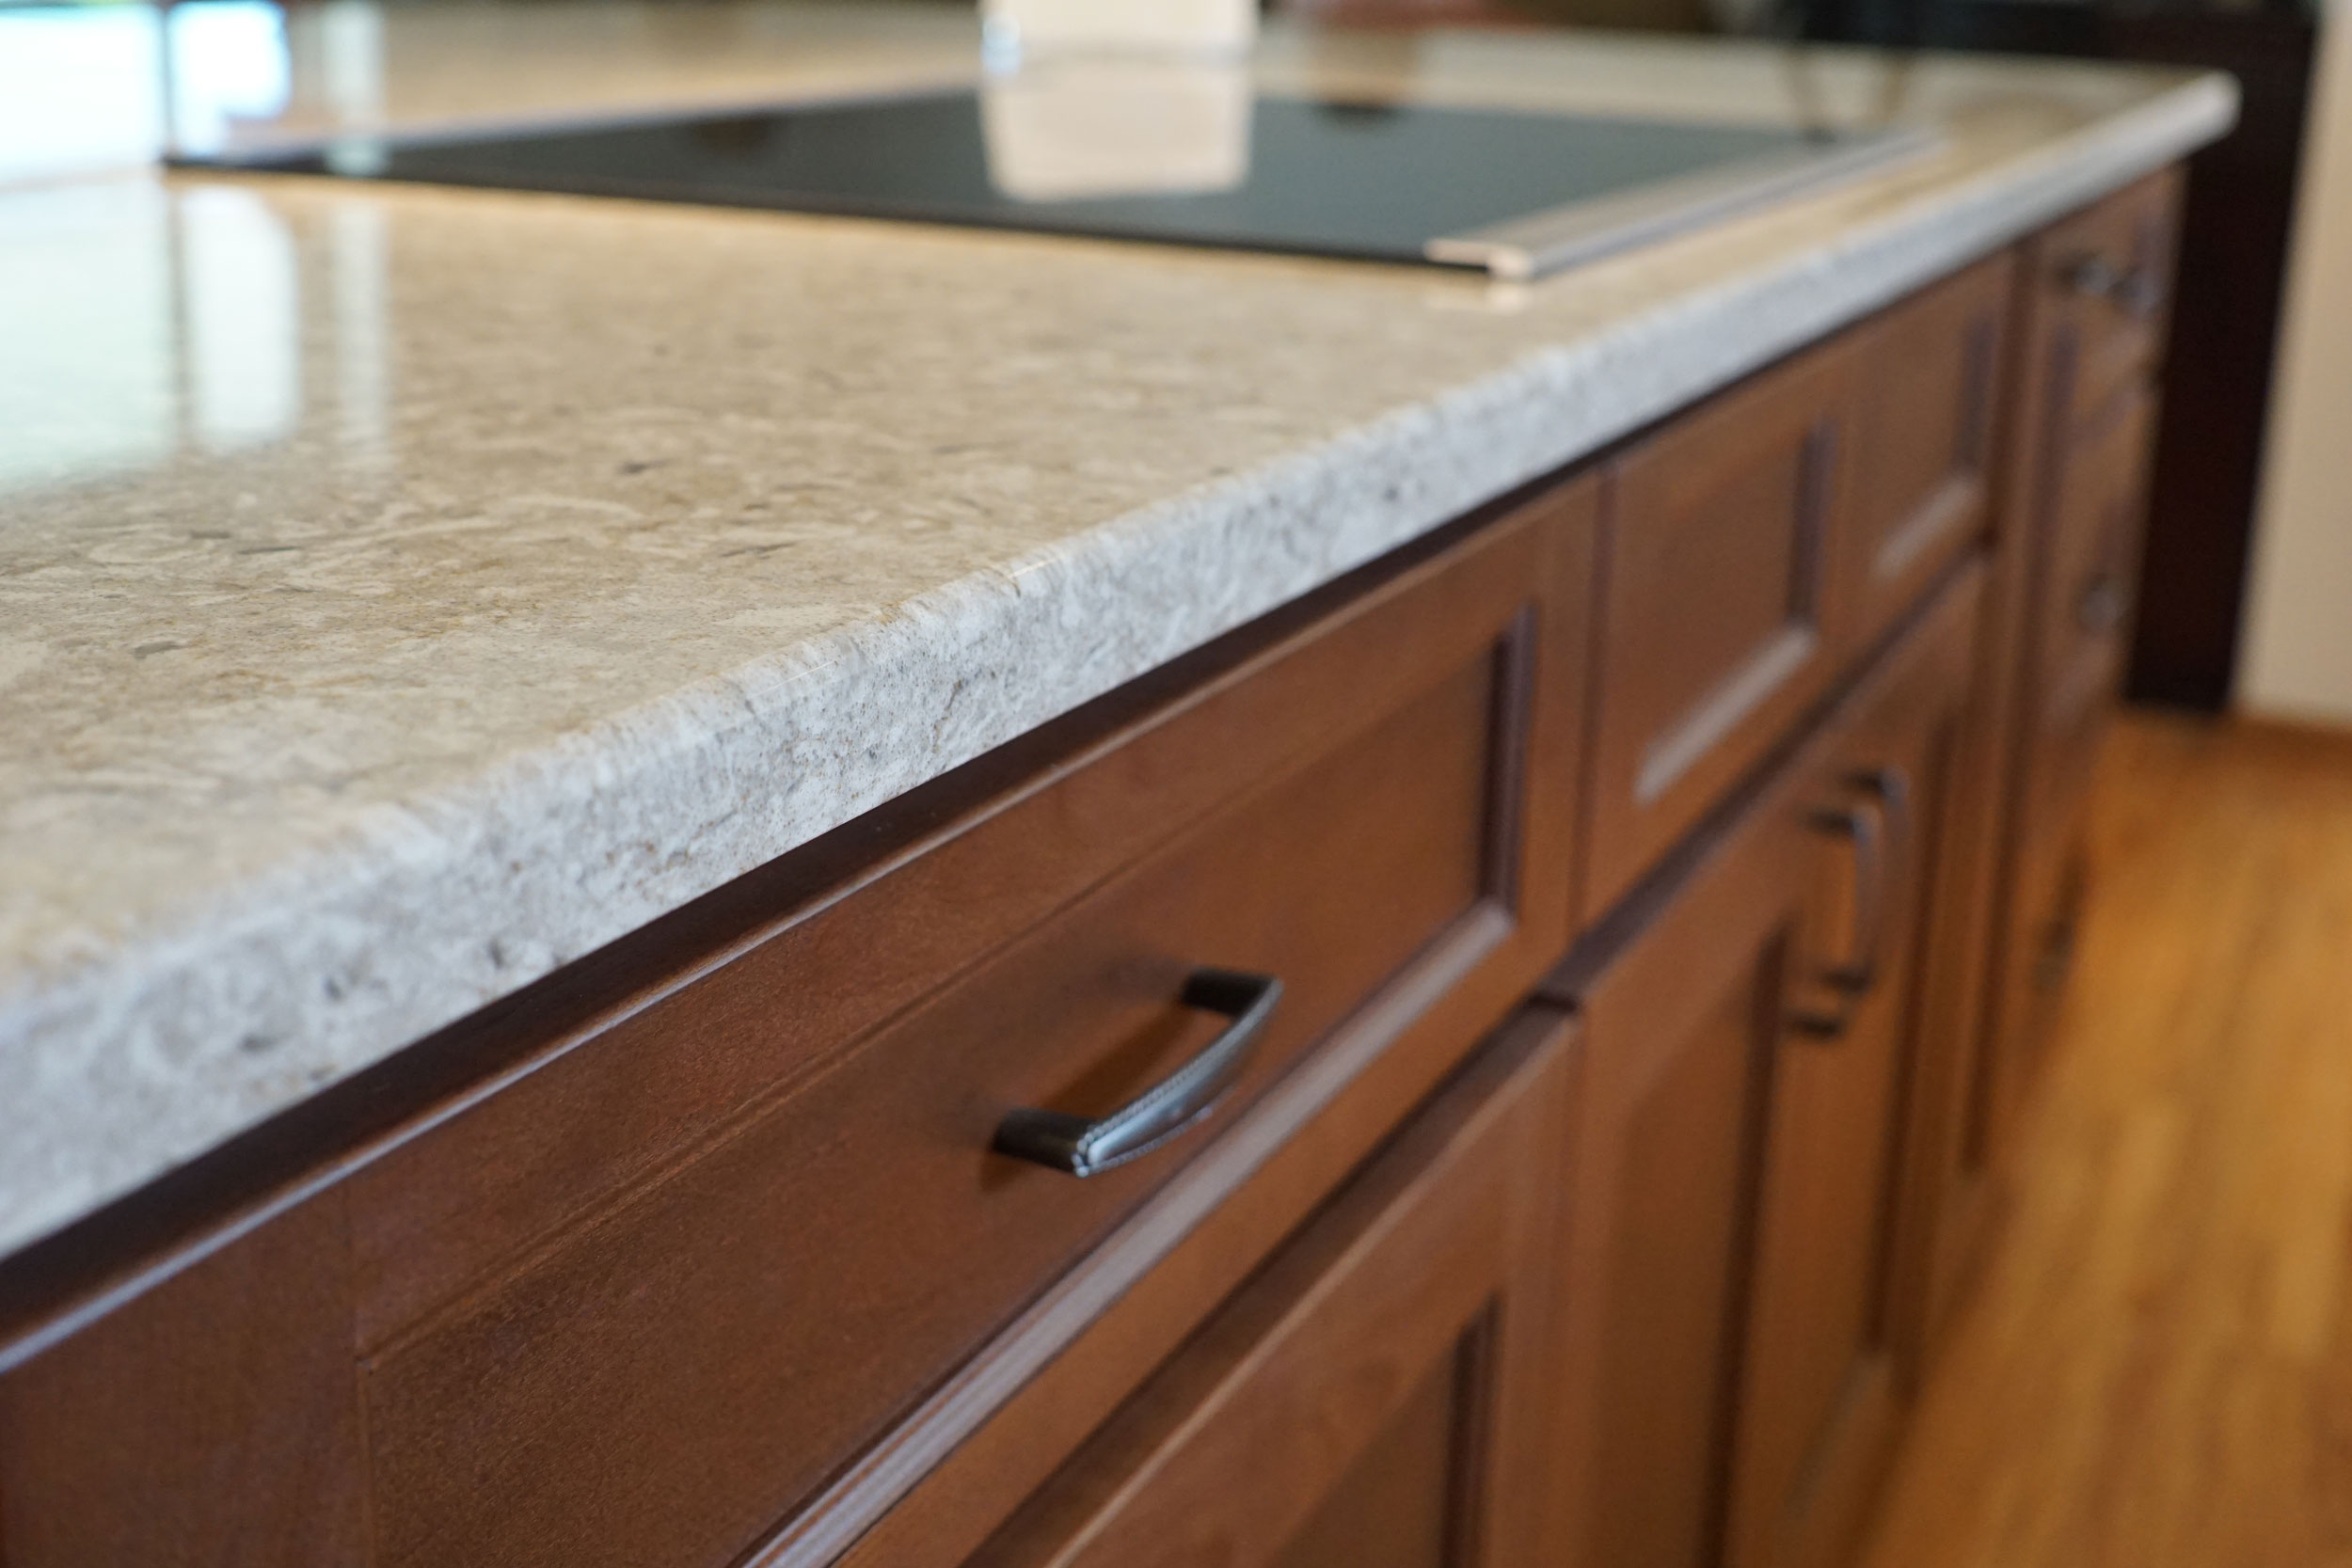 warm-mocha-kitchen-counter-cabinet.jpg